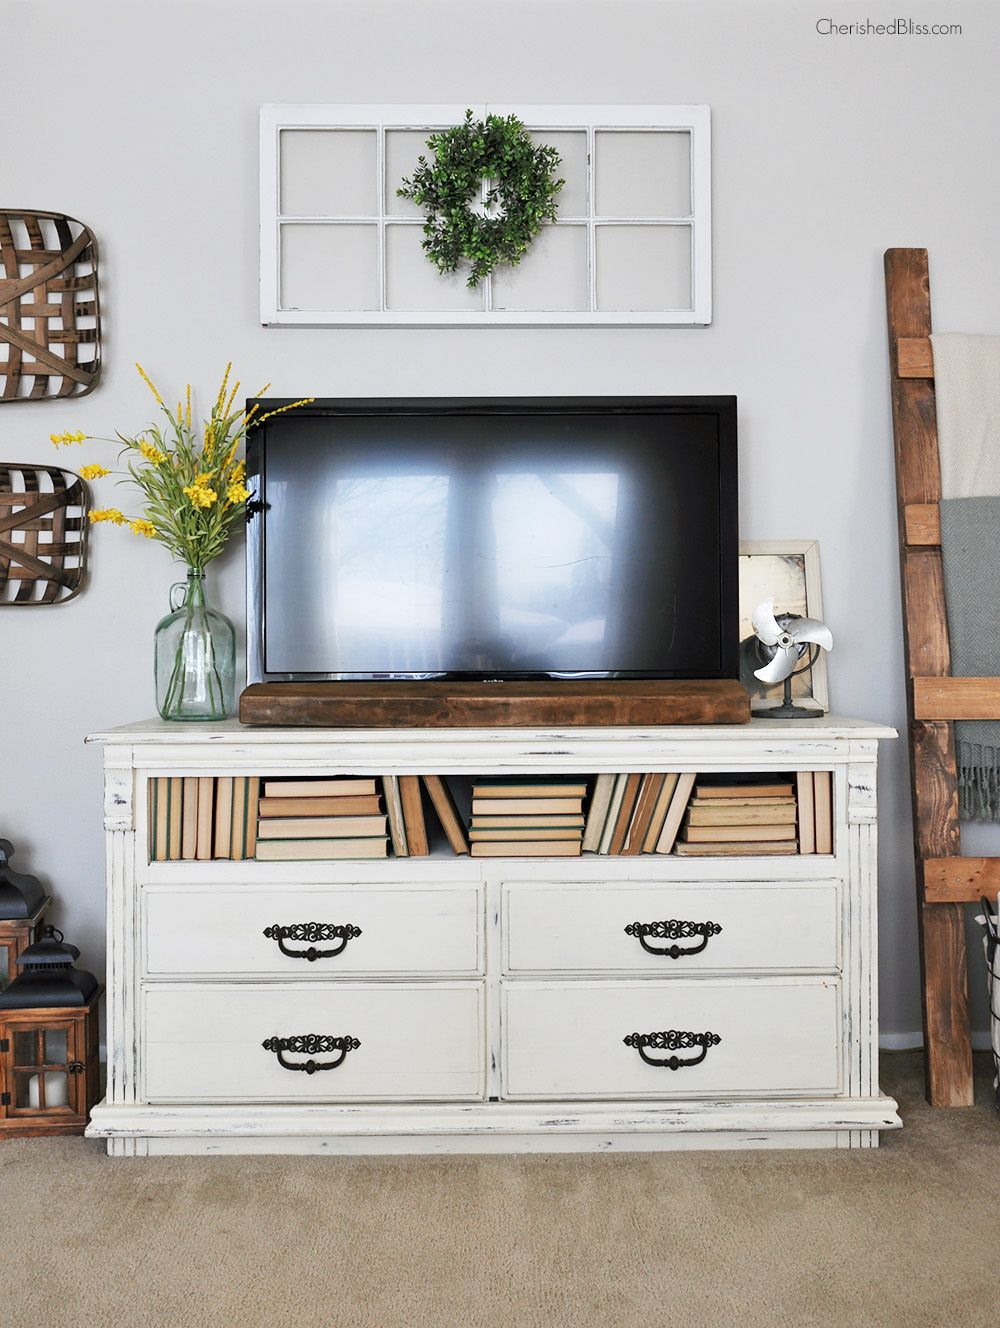 How To Decorate Around A Tv Cherished Bliss Wall Decor Li